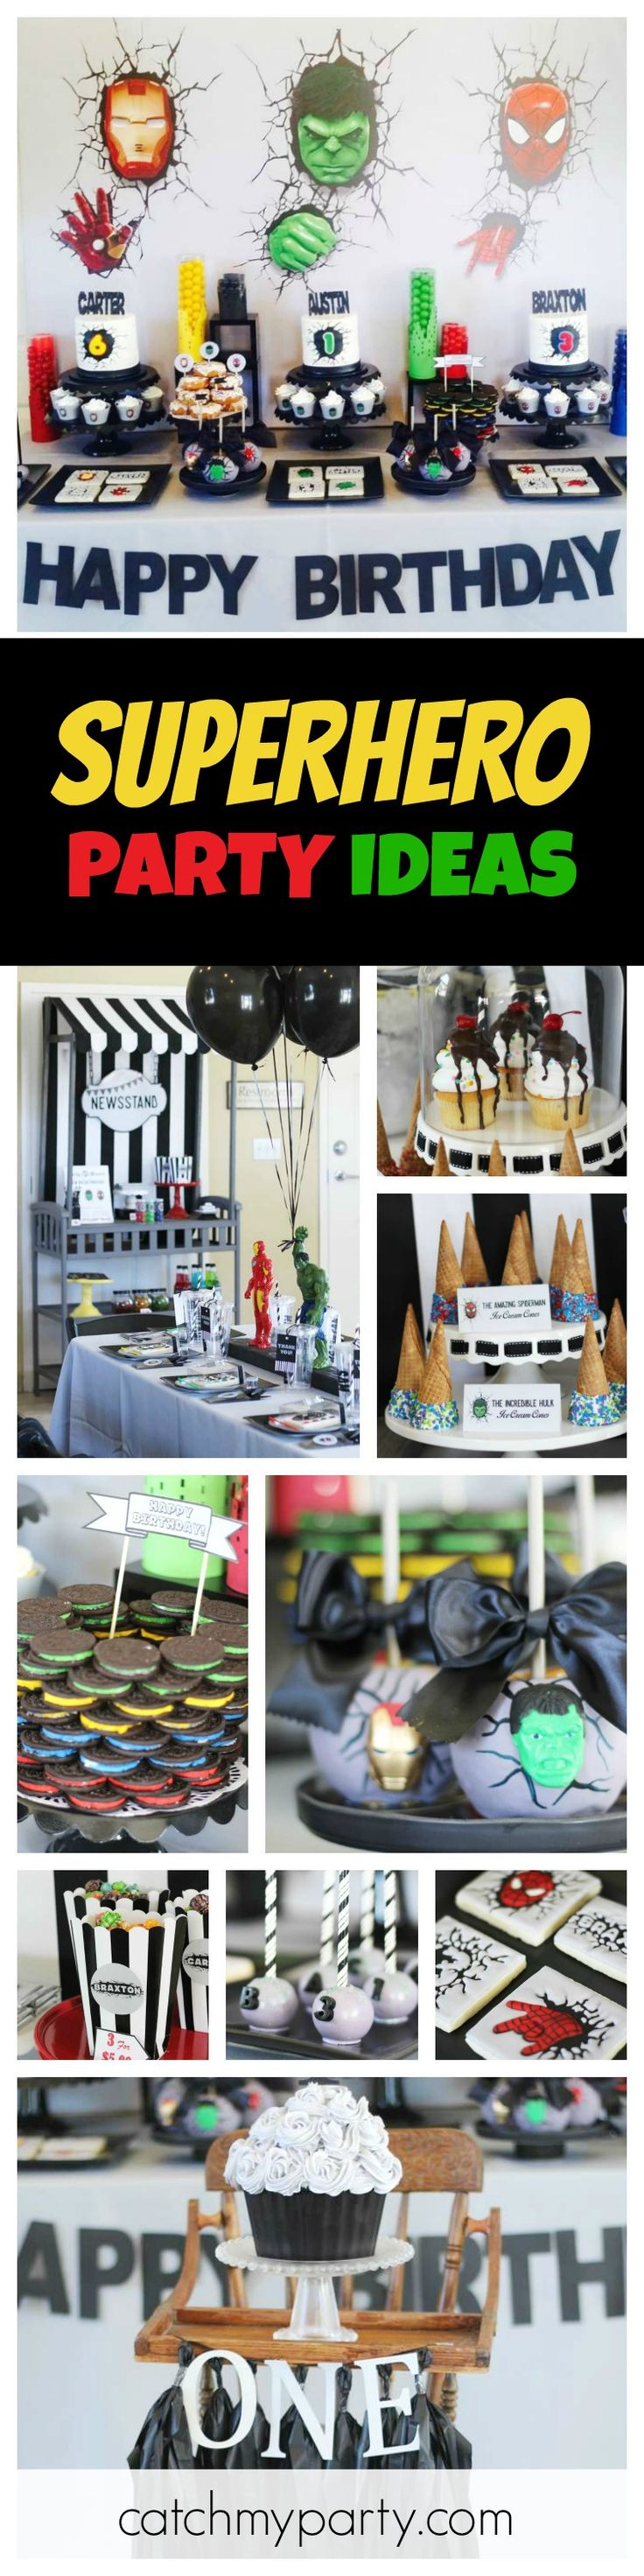 Check out this cool Superhero Birthday Party for 3! The awesome backdrop and cakes are incredible! See more party ideas and share yours at CatchMyParty.com